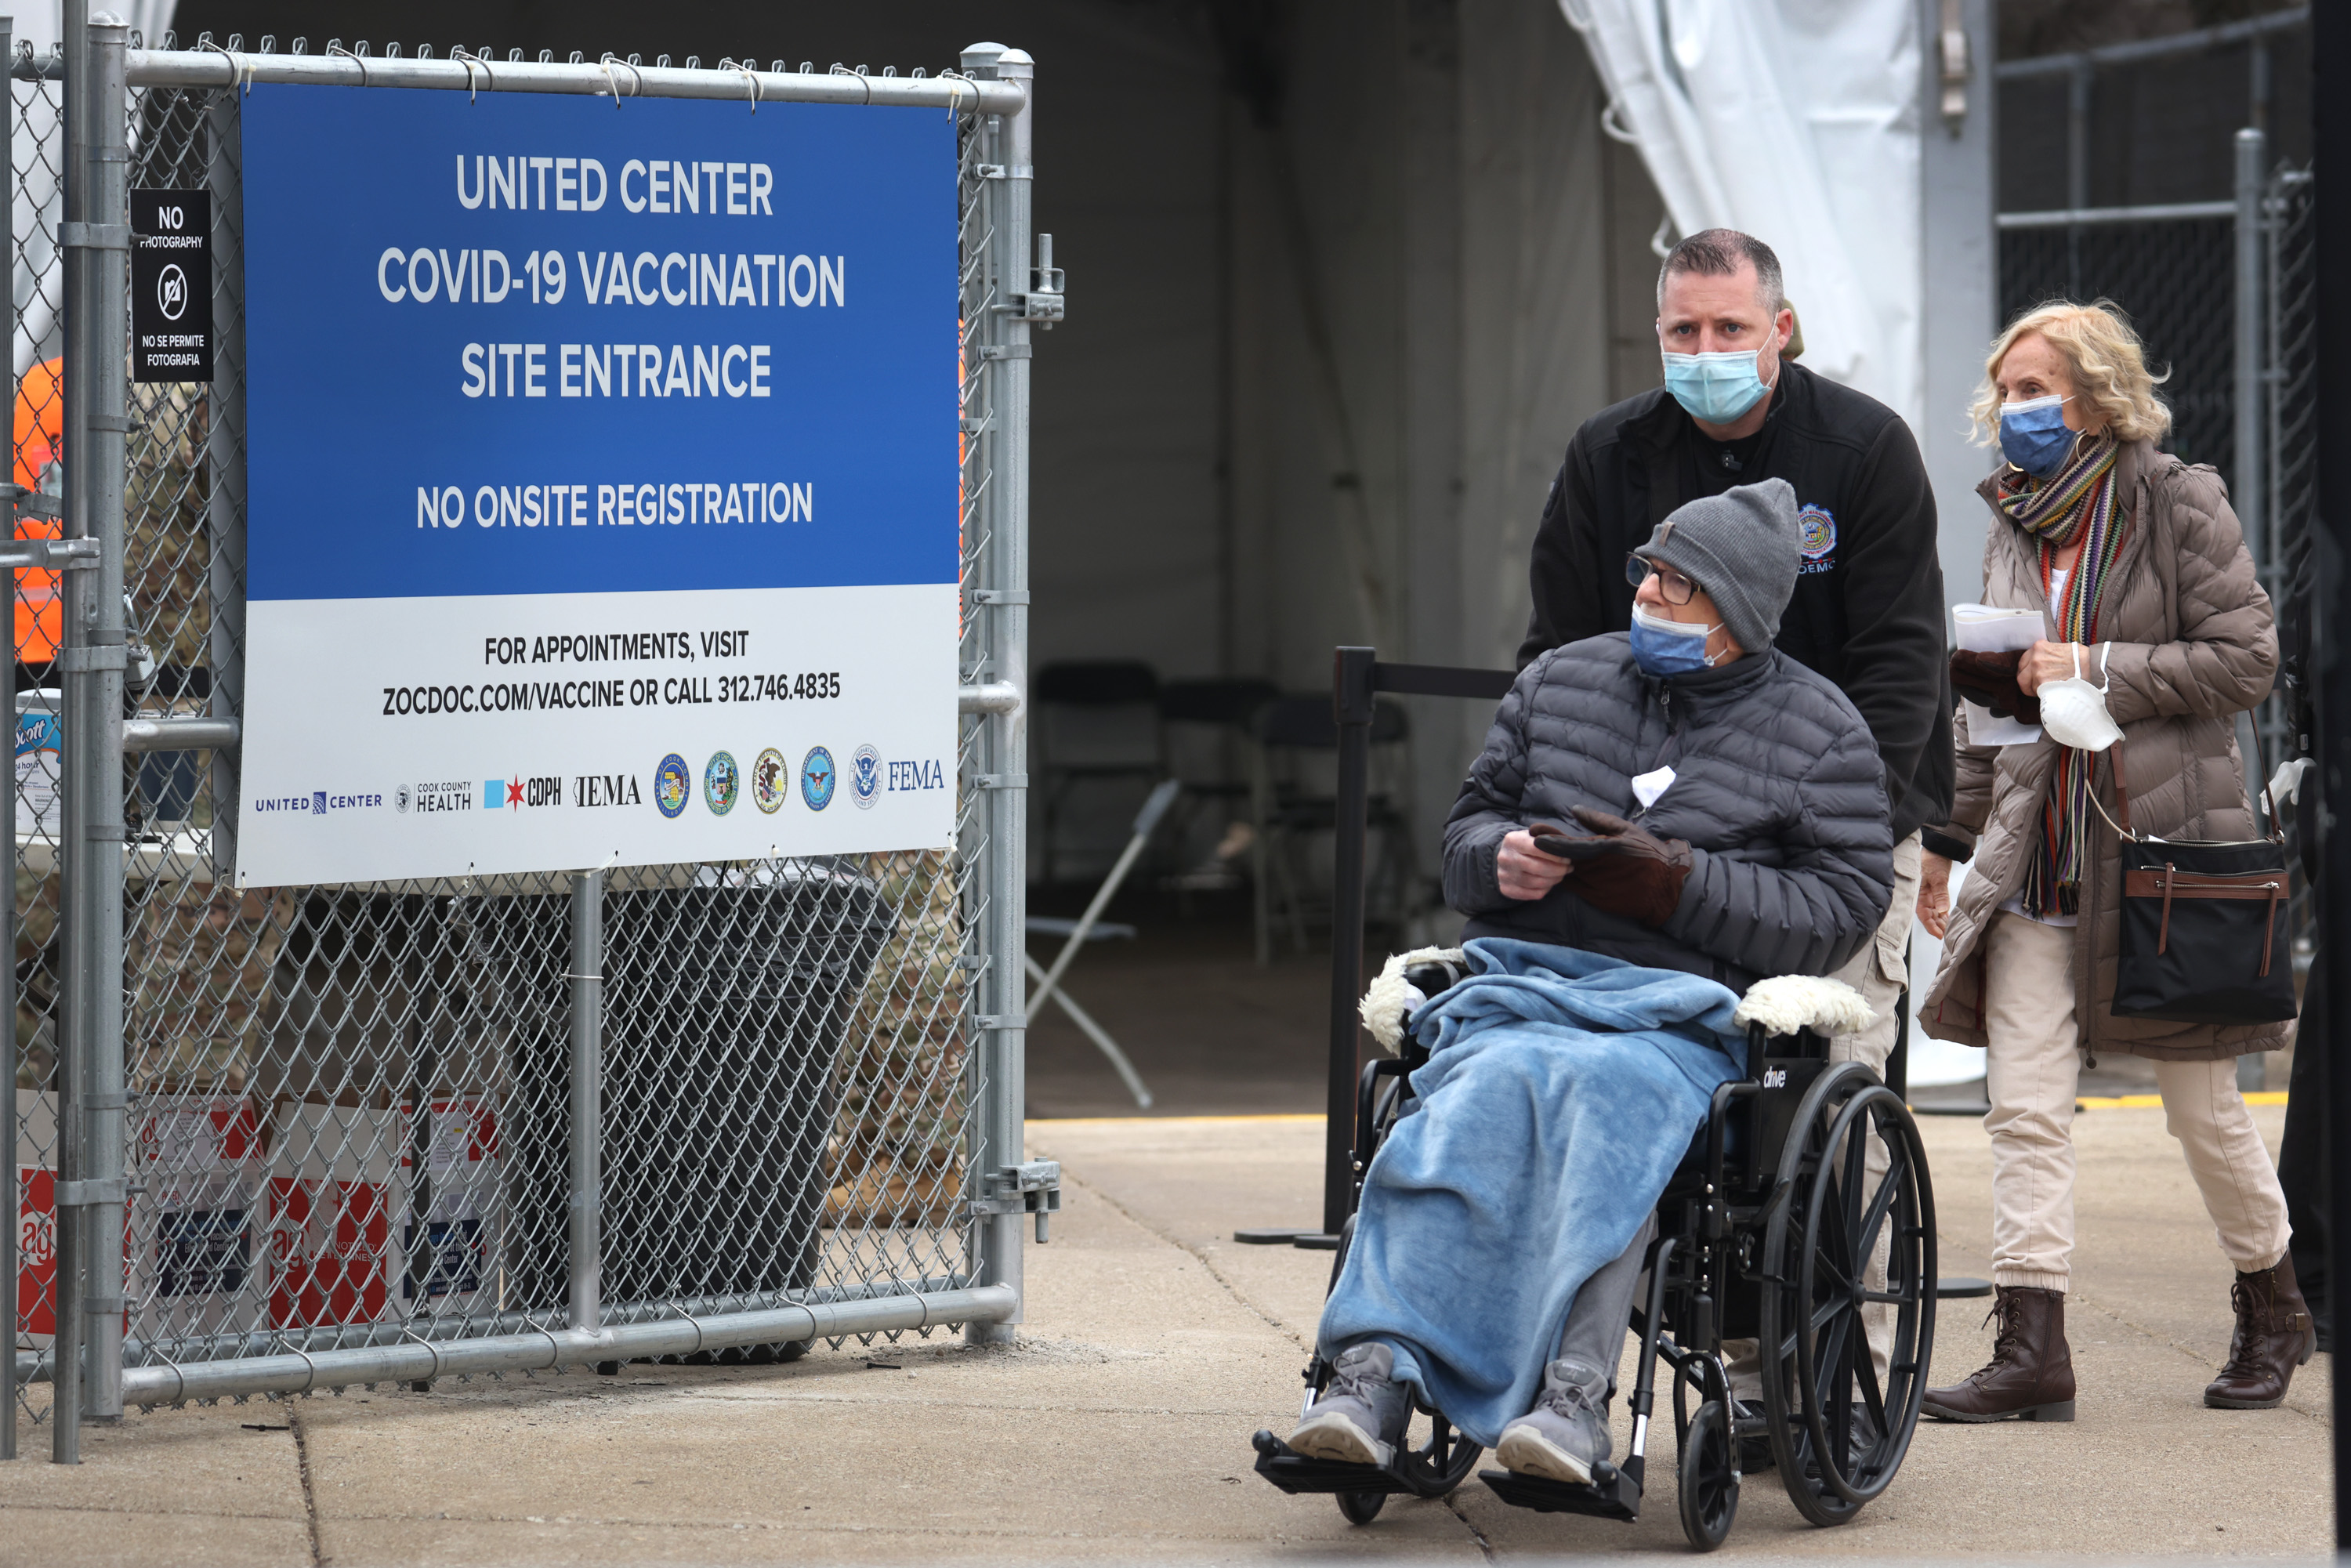 Chicago's United Center Opens As Mass Vaccination Site